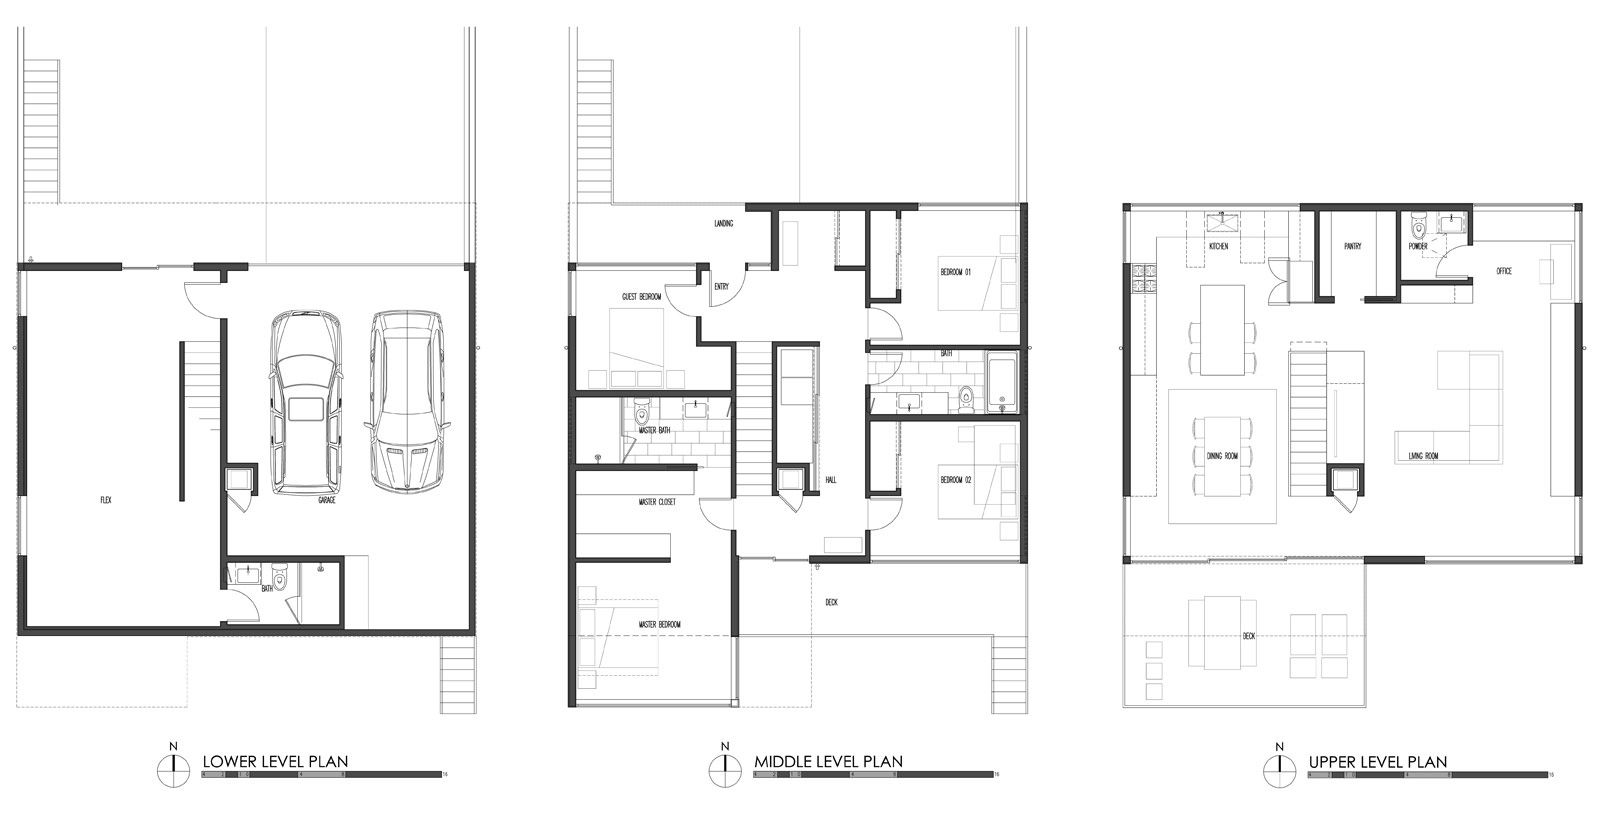 House double staircase floor plan Floor plan view